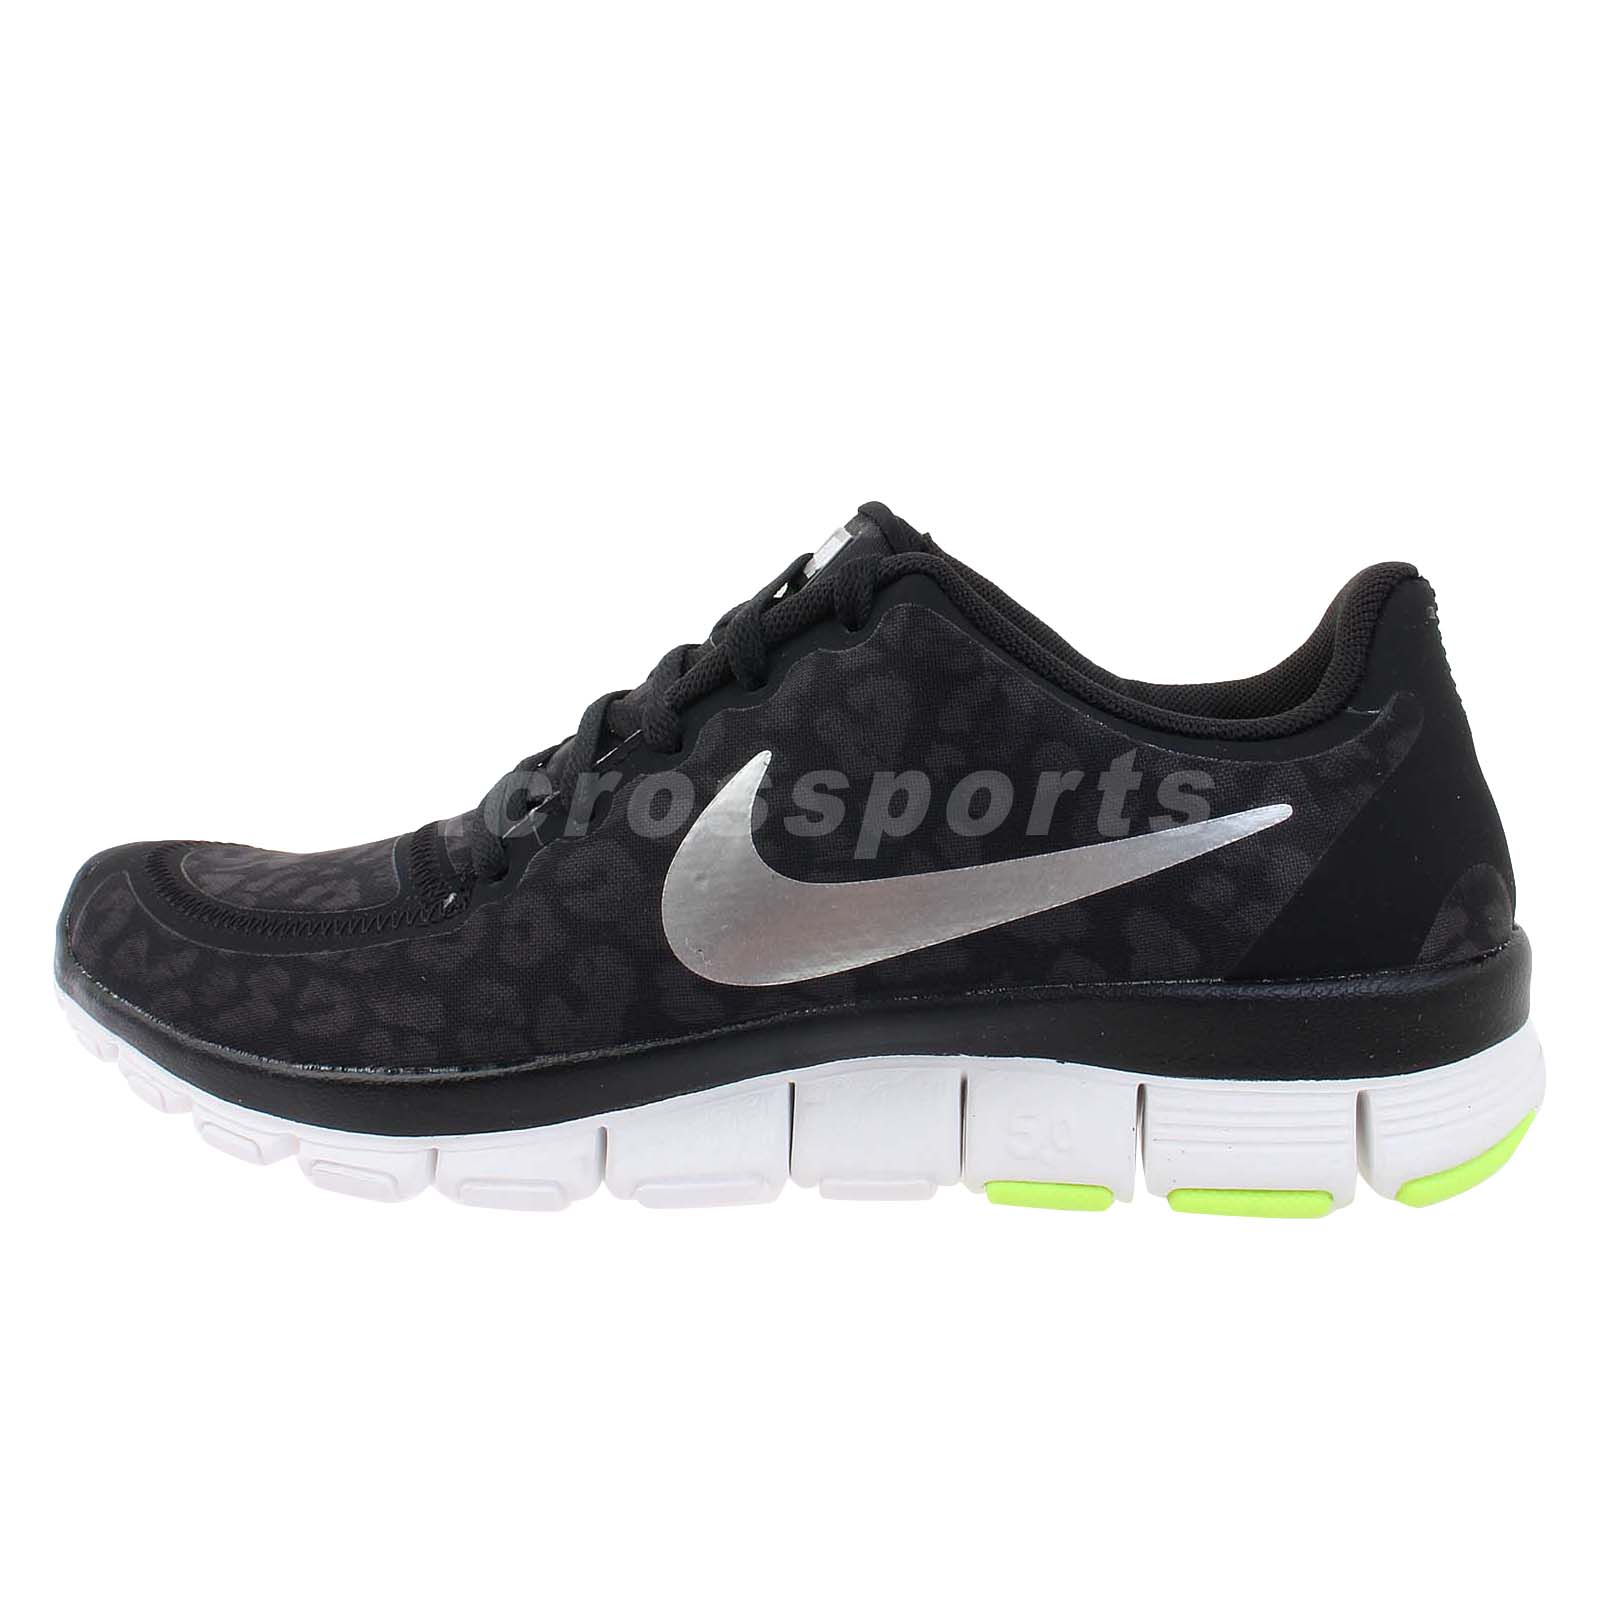 Popular Shop Hot Nike Roshe Run  Returns Nike Free Womens Cool Grey White Violet Force 580406 015 Nike Free  The Barefootlike Ride You Love In The Nike Free, As Well As An Ultracomfortable Fit Come Together In The Nike Free Running